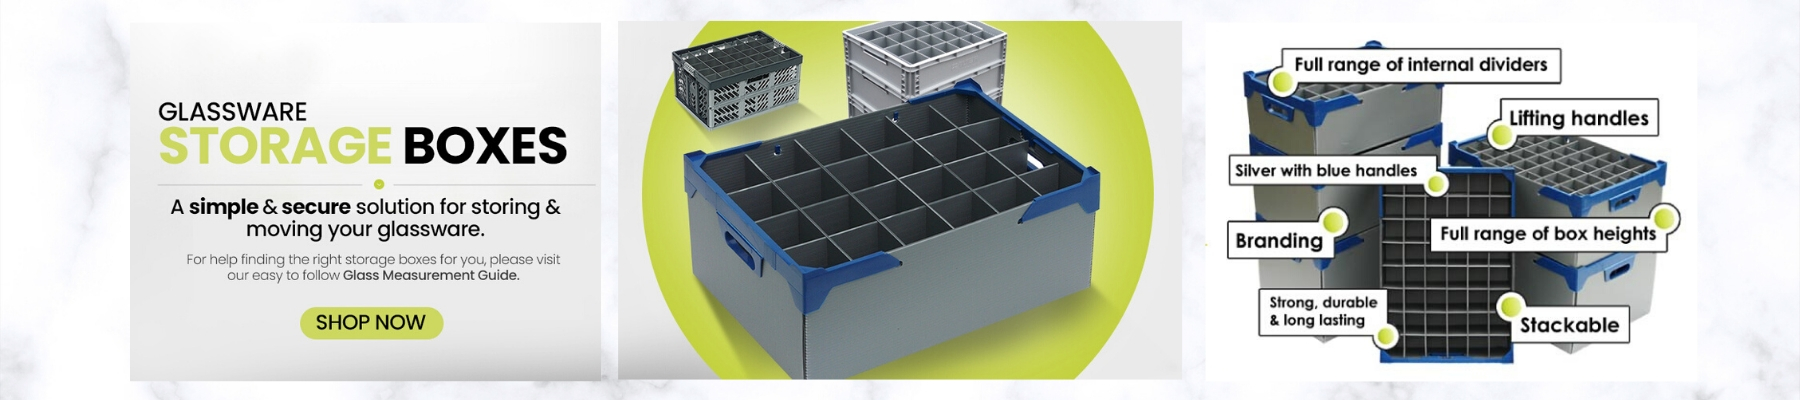 Glassware Storage Boxes and Crates UK